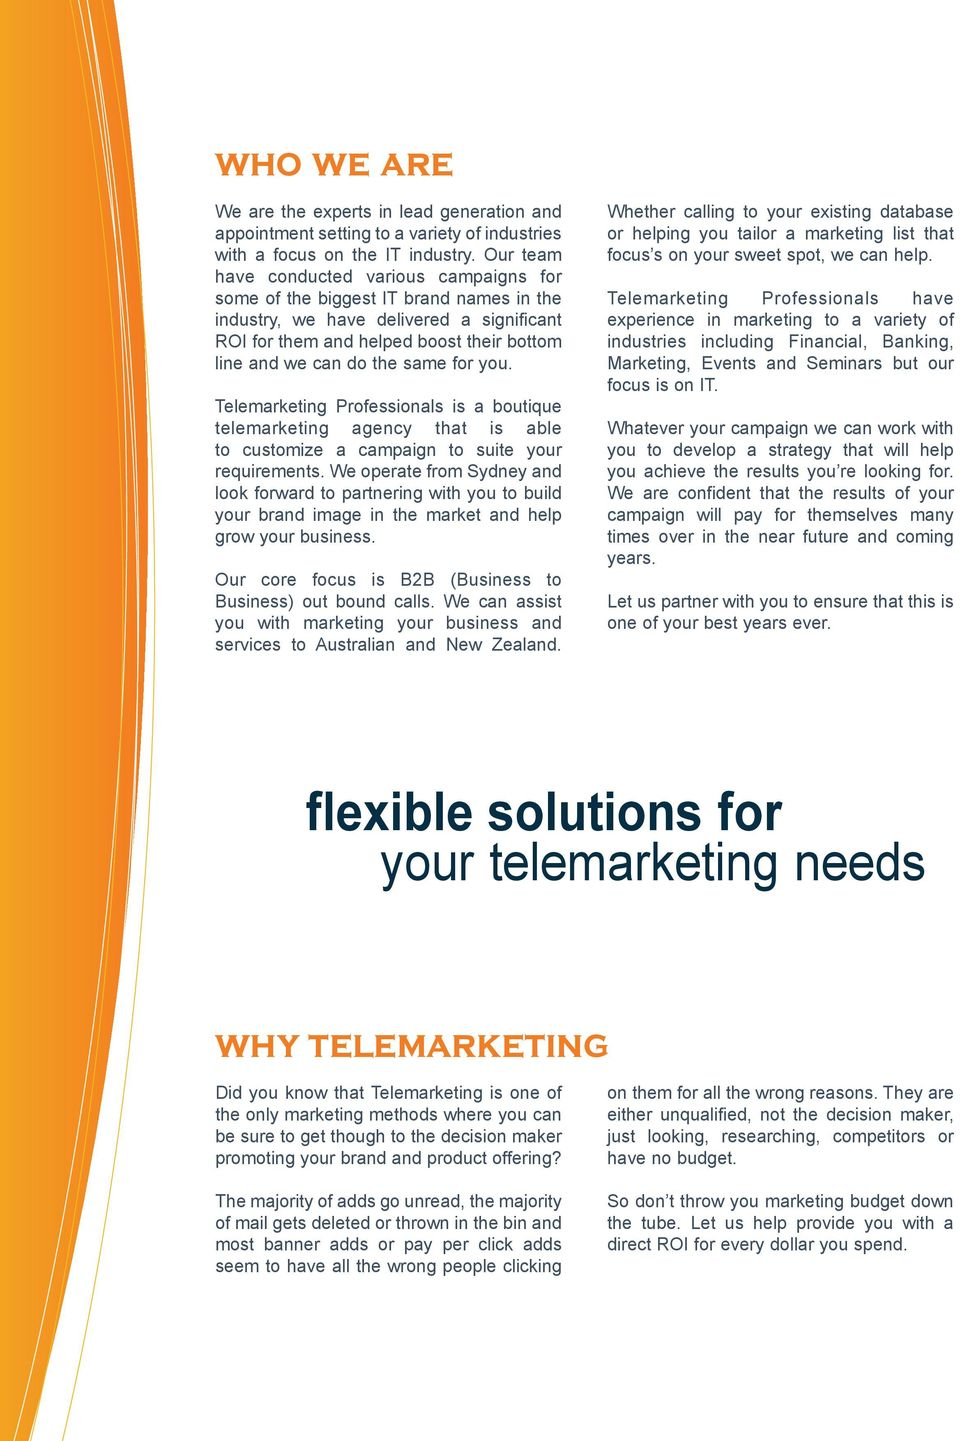 same for you. Telemarketing Professionals is a boutique telemarketing agency that is able to customize a campaign to suite your requirements.